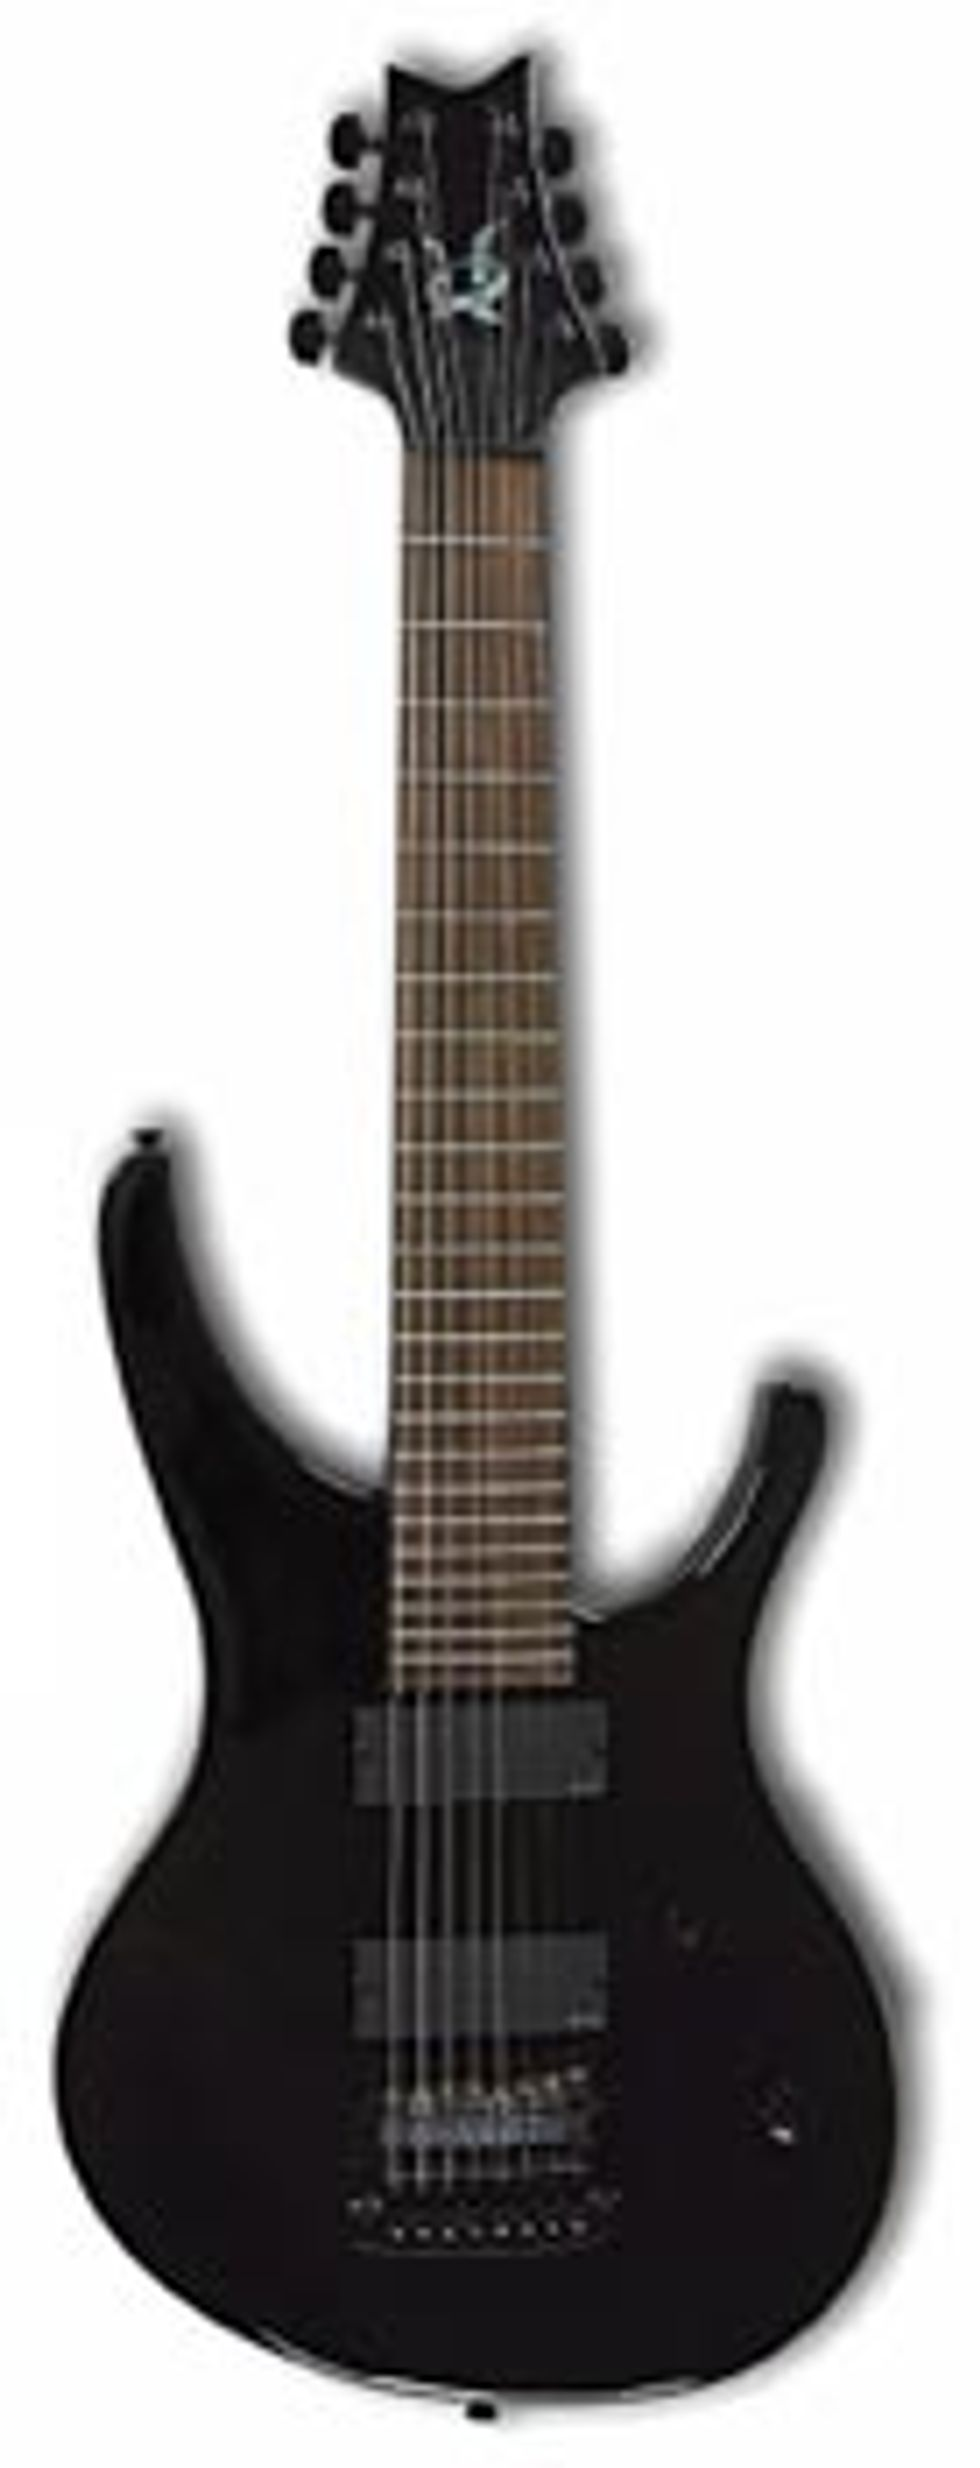 Halo Guitars Octavia 8-String Electric